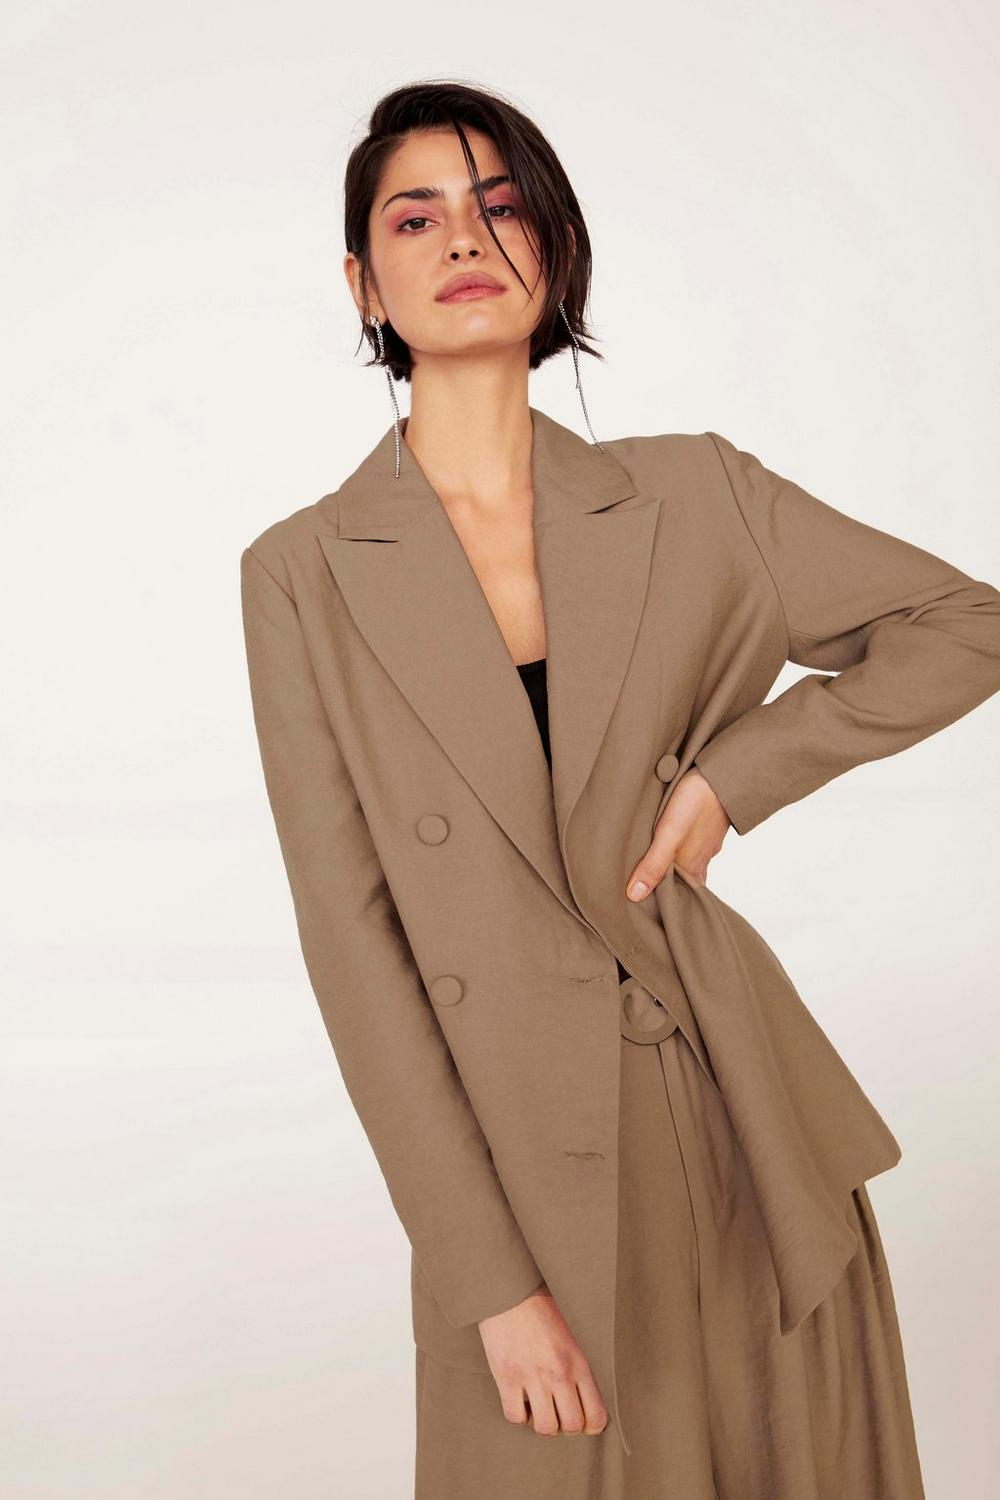 Business As Usual Oversized Suit Jacket, $55, Nasty Gal